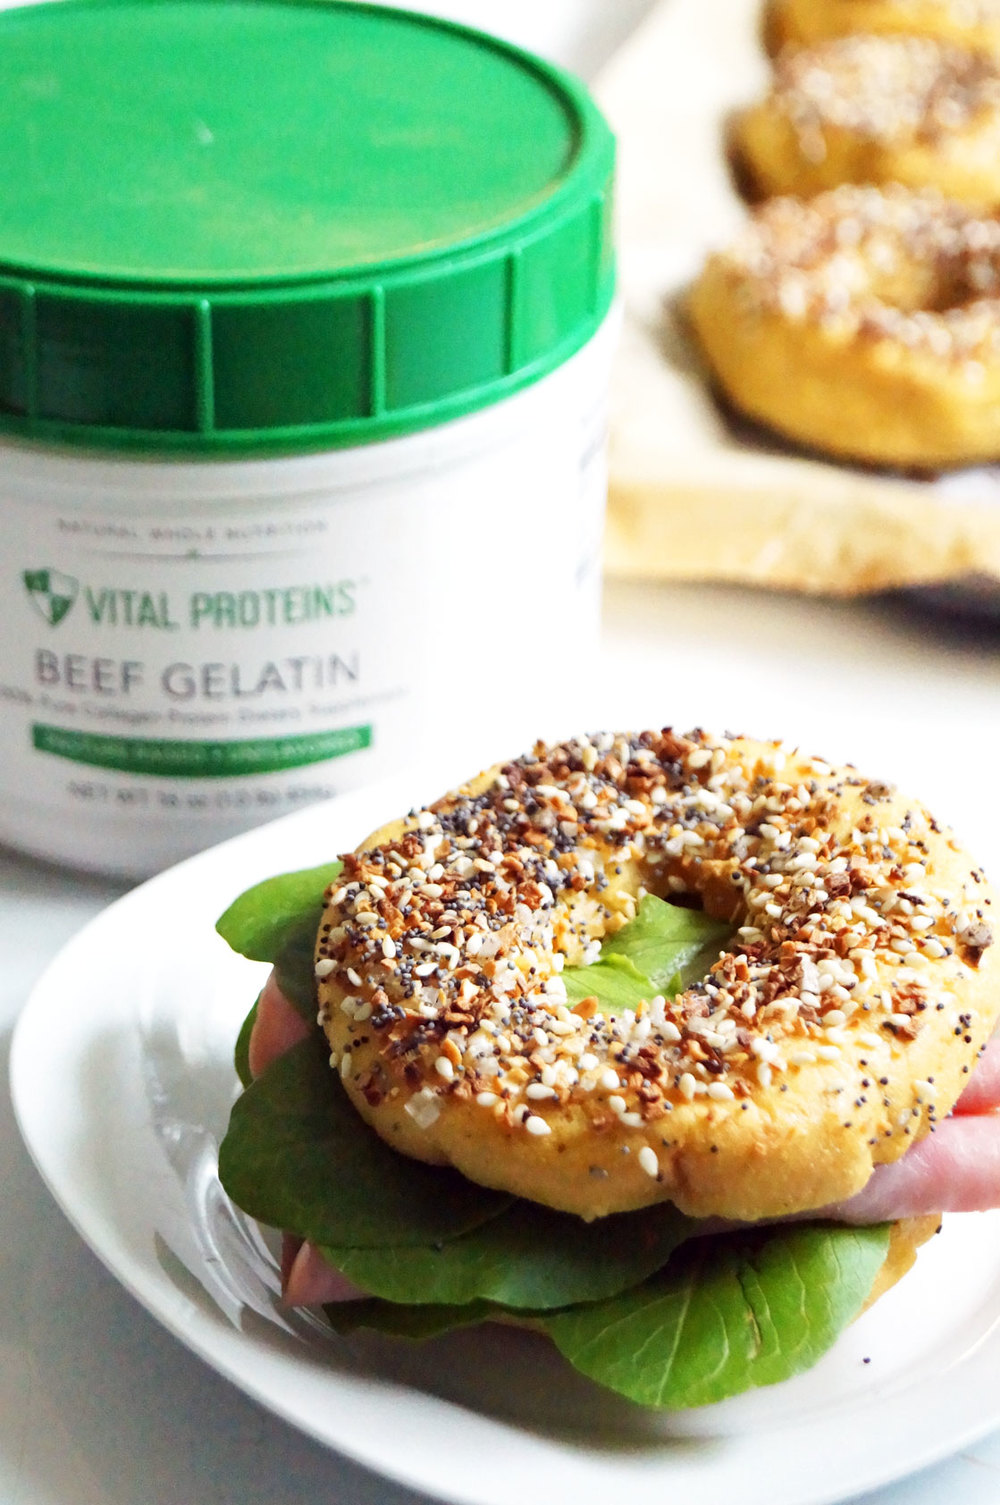 AIP Bagel Sandwiches with Vital Proteins gelatin // TheCuriousCoconut.com